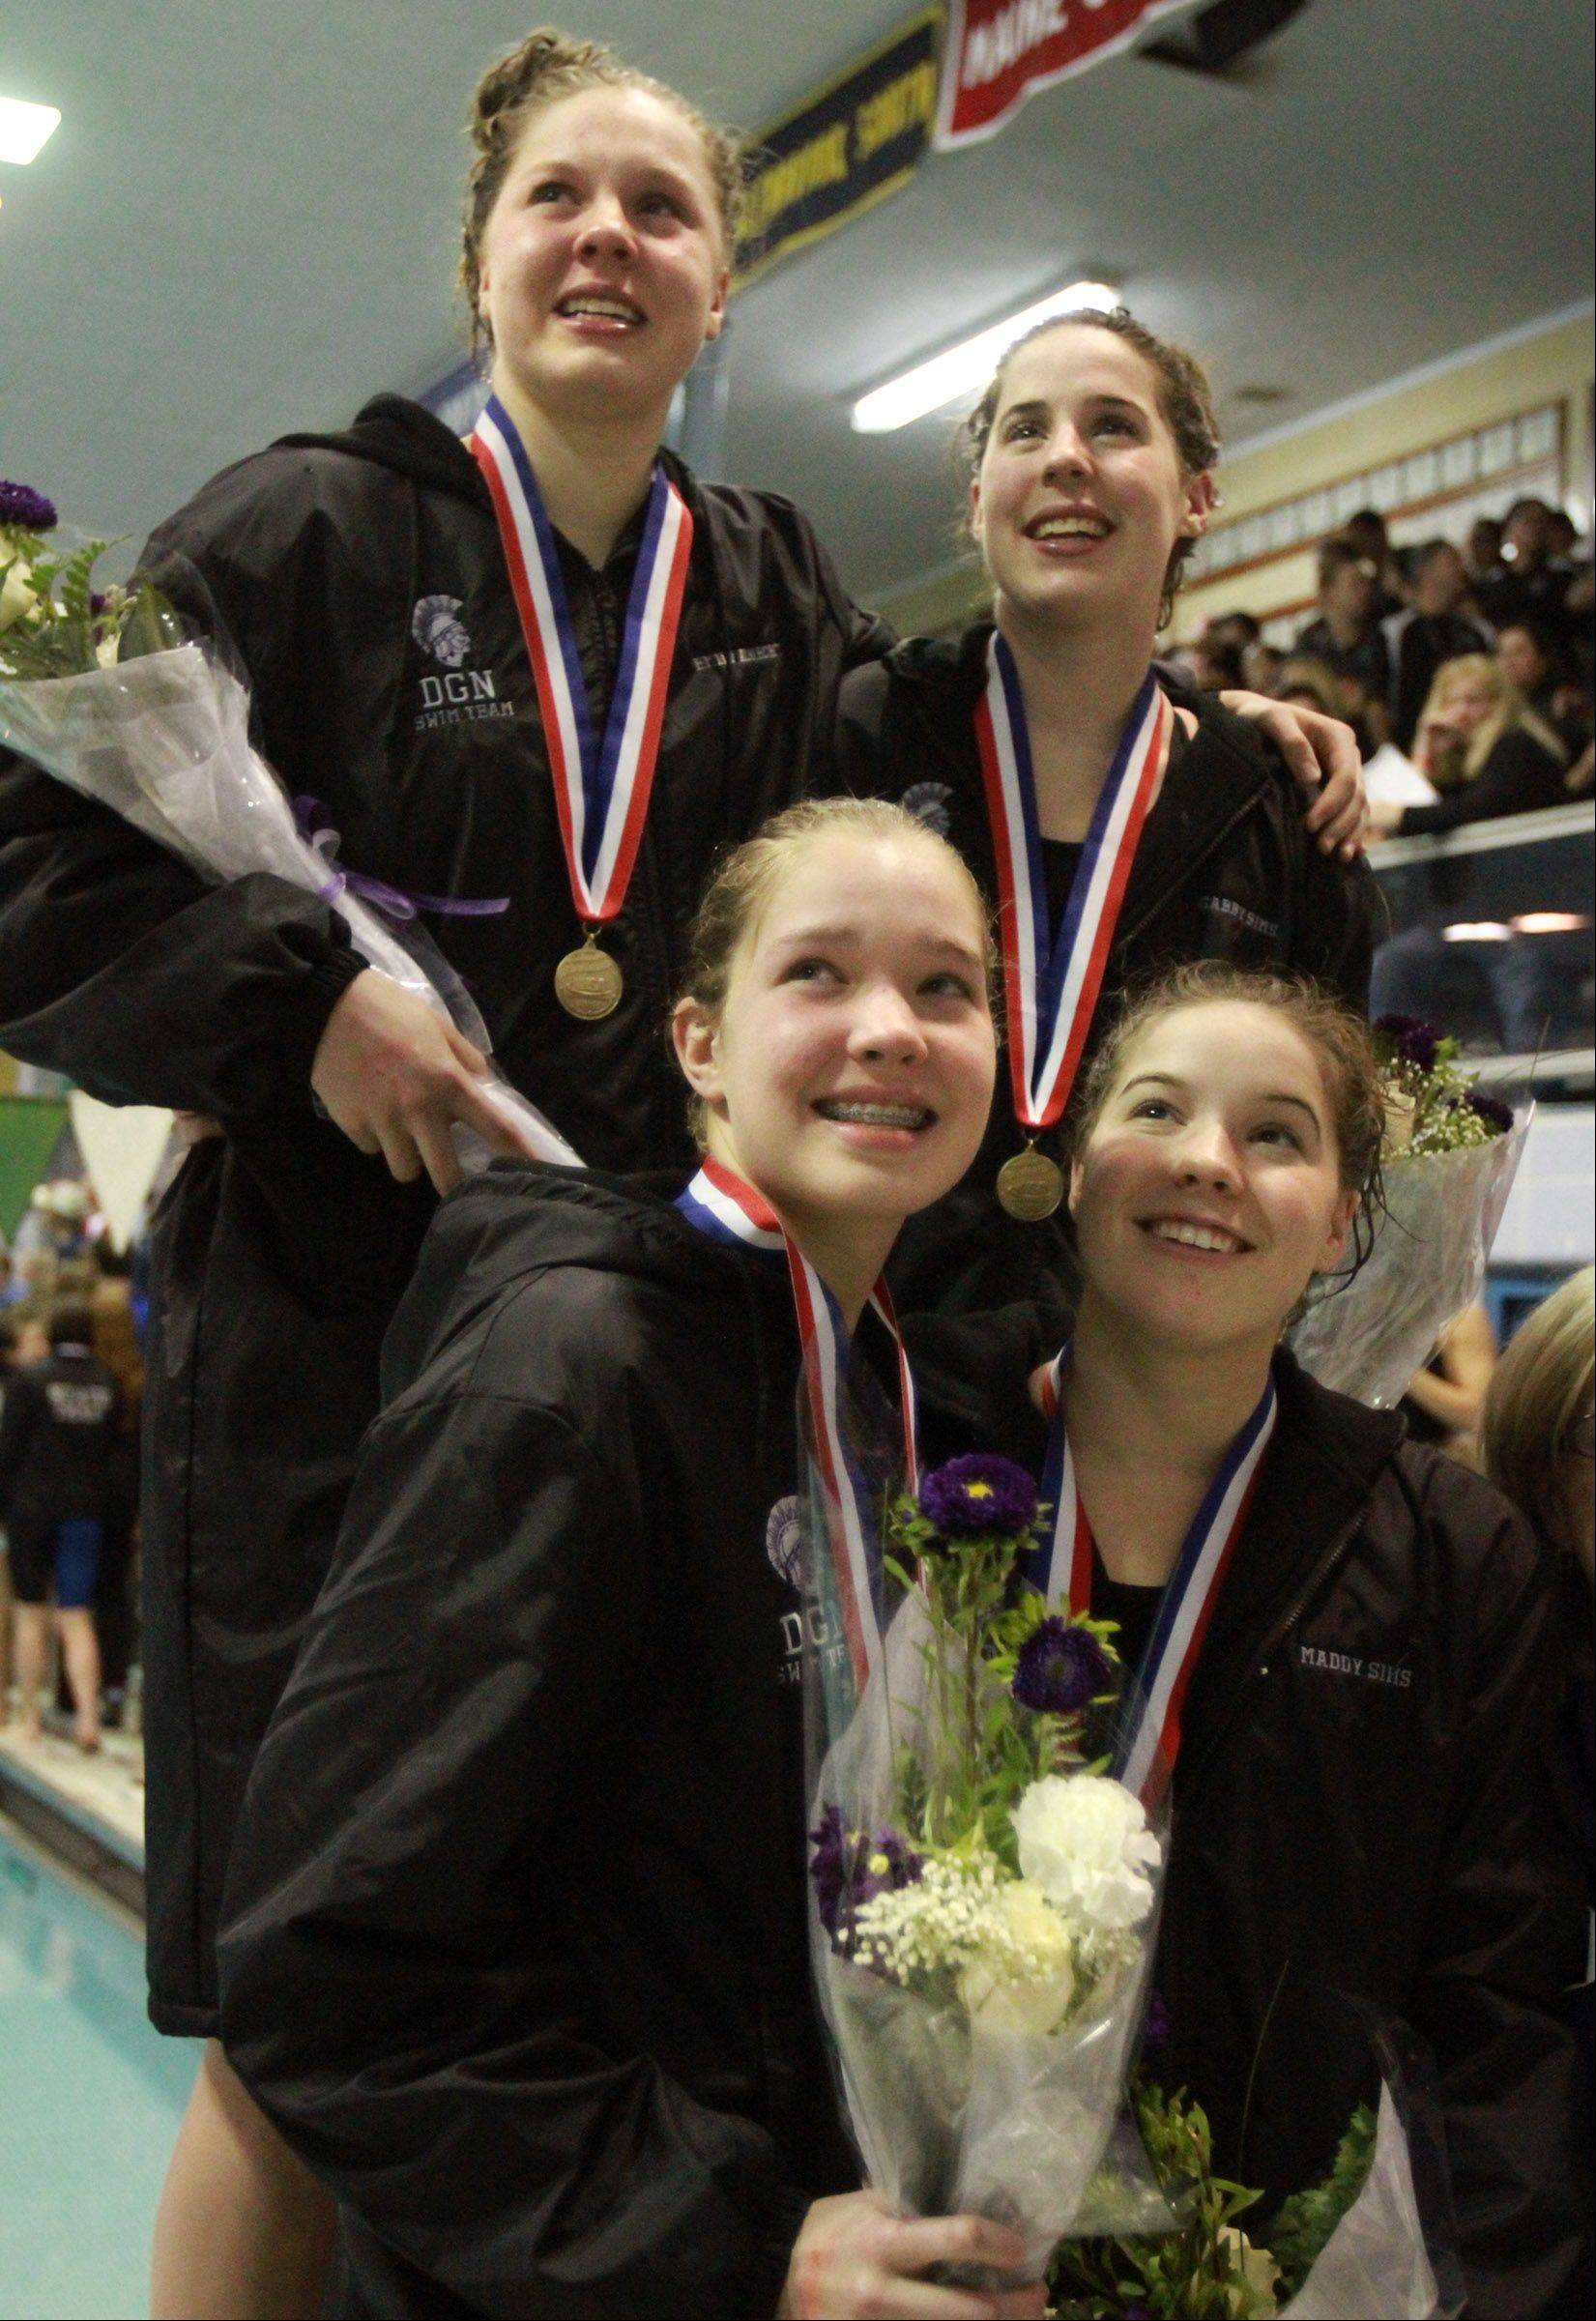 Downers Grove North's Emily Albrecht, Lindsay Mathys, Maddy Sims and Gabby Sims with their medals for 2nd place in the 400 yard free style relay at the girls state swimming finals on Saturday in Winnetka.